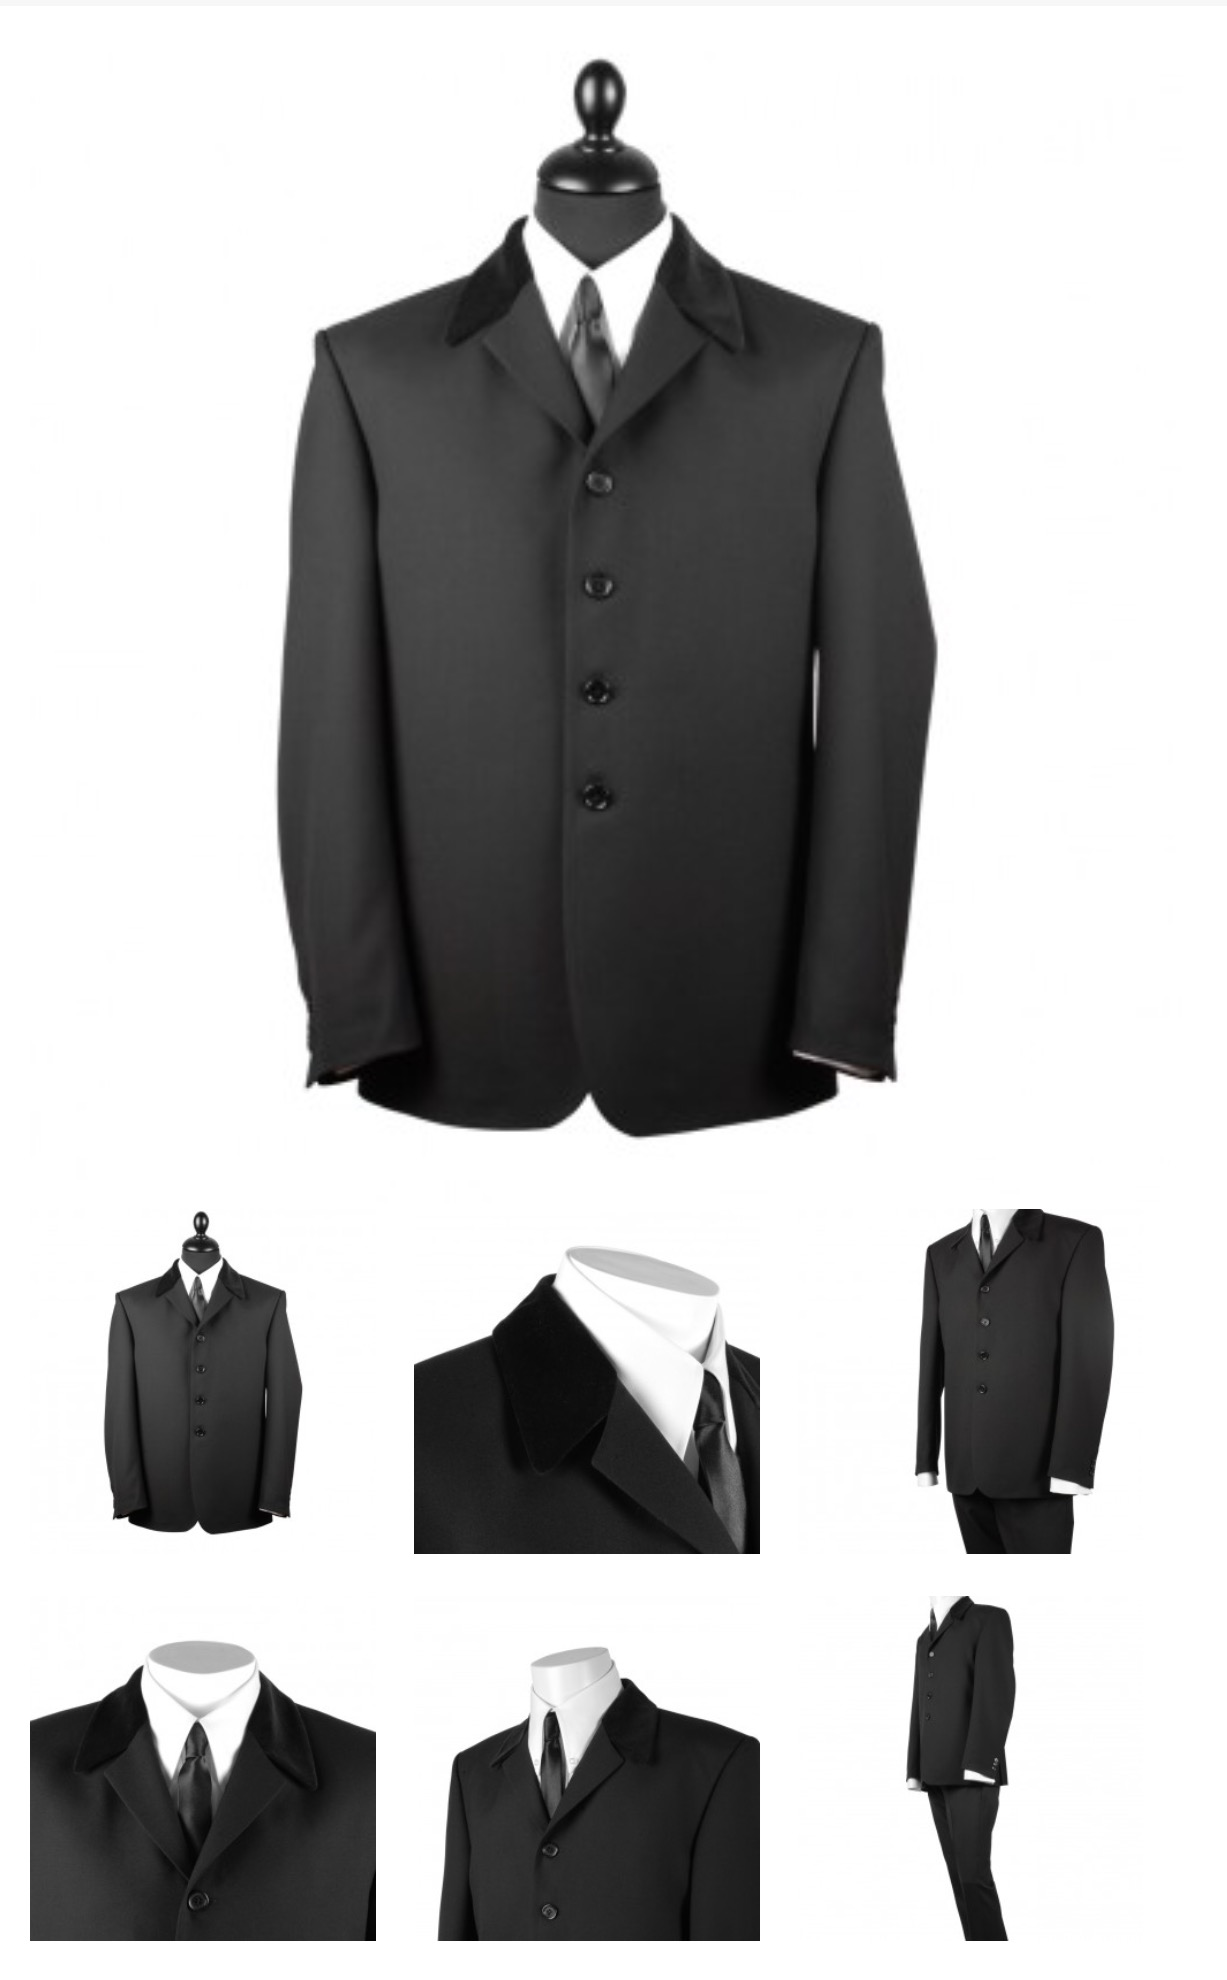 The Beatwear Sullivan Suit